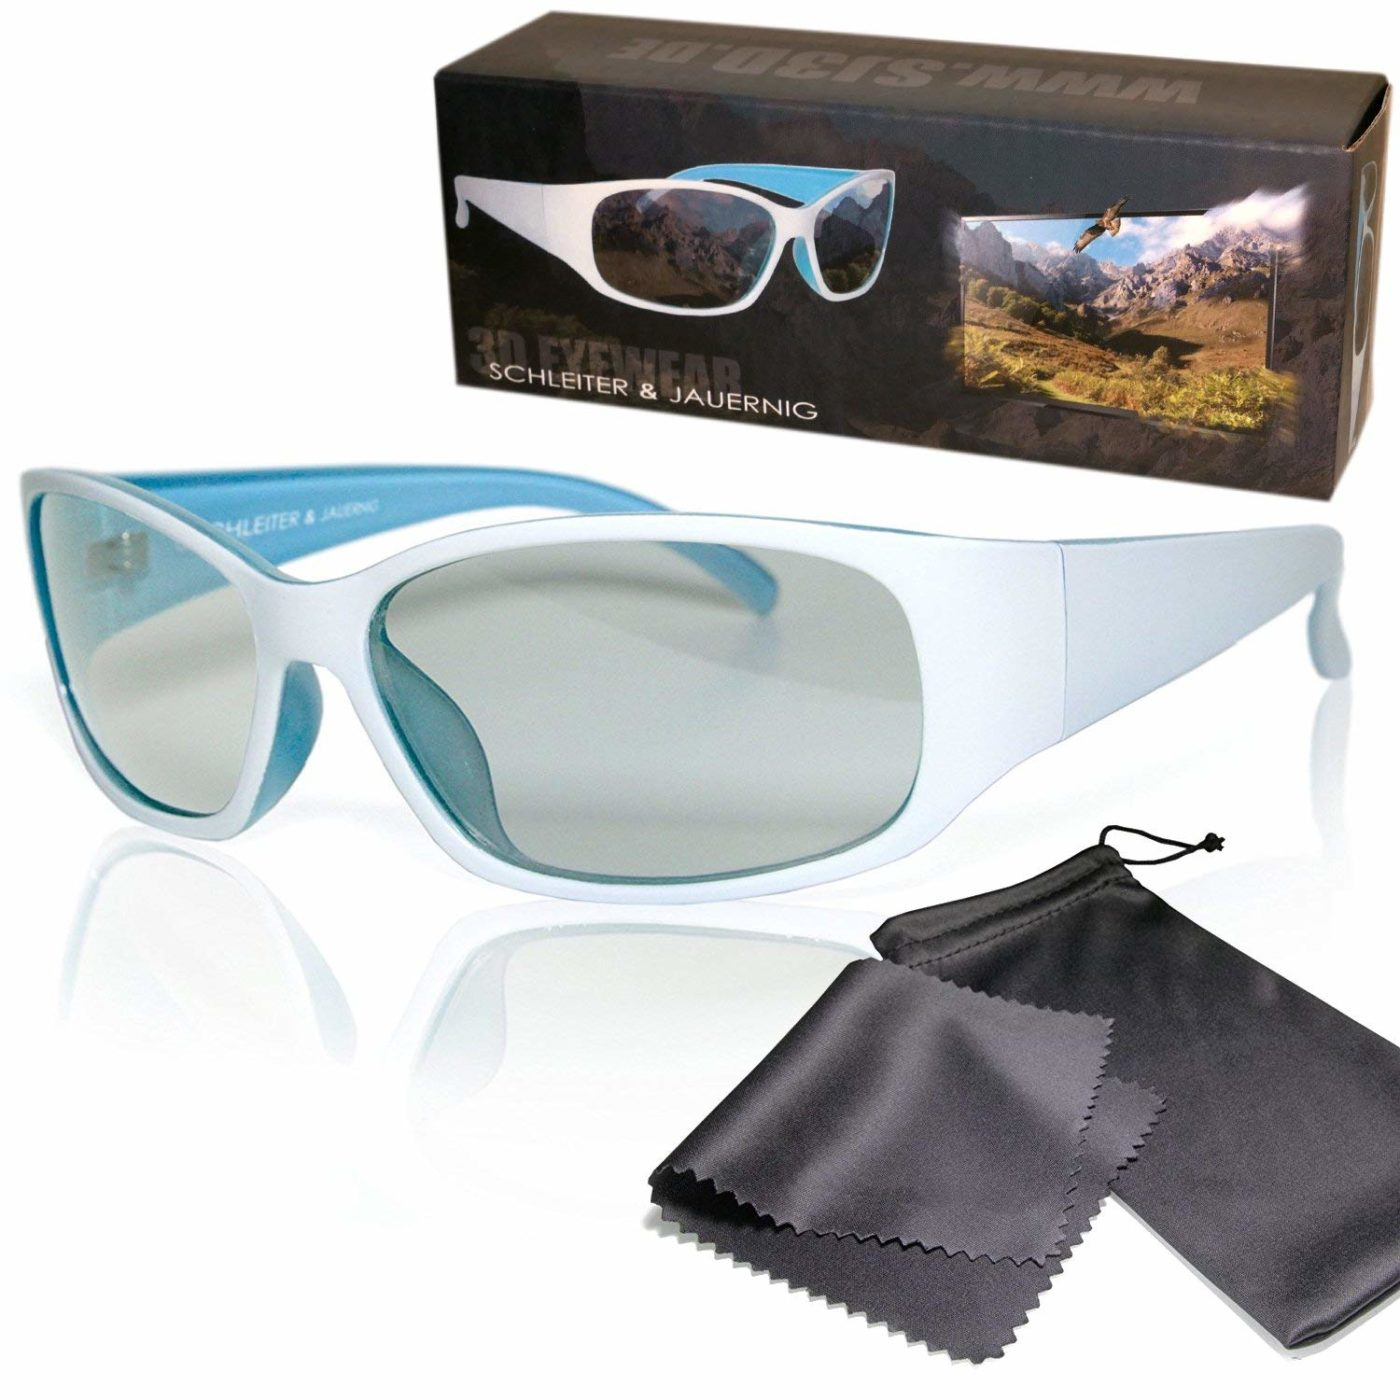 ee329d8a571 Passive 3D glasses for him and her - Schleiter   Jauernig - 3D ...